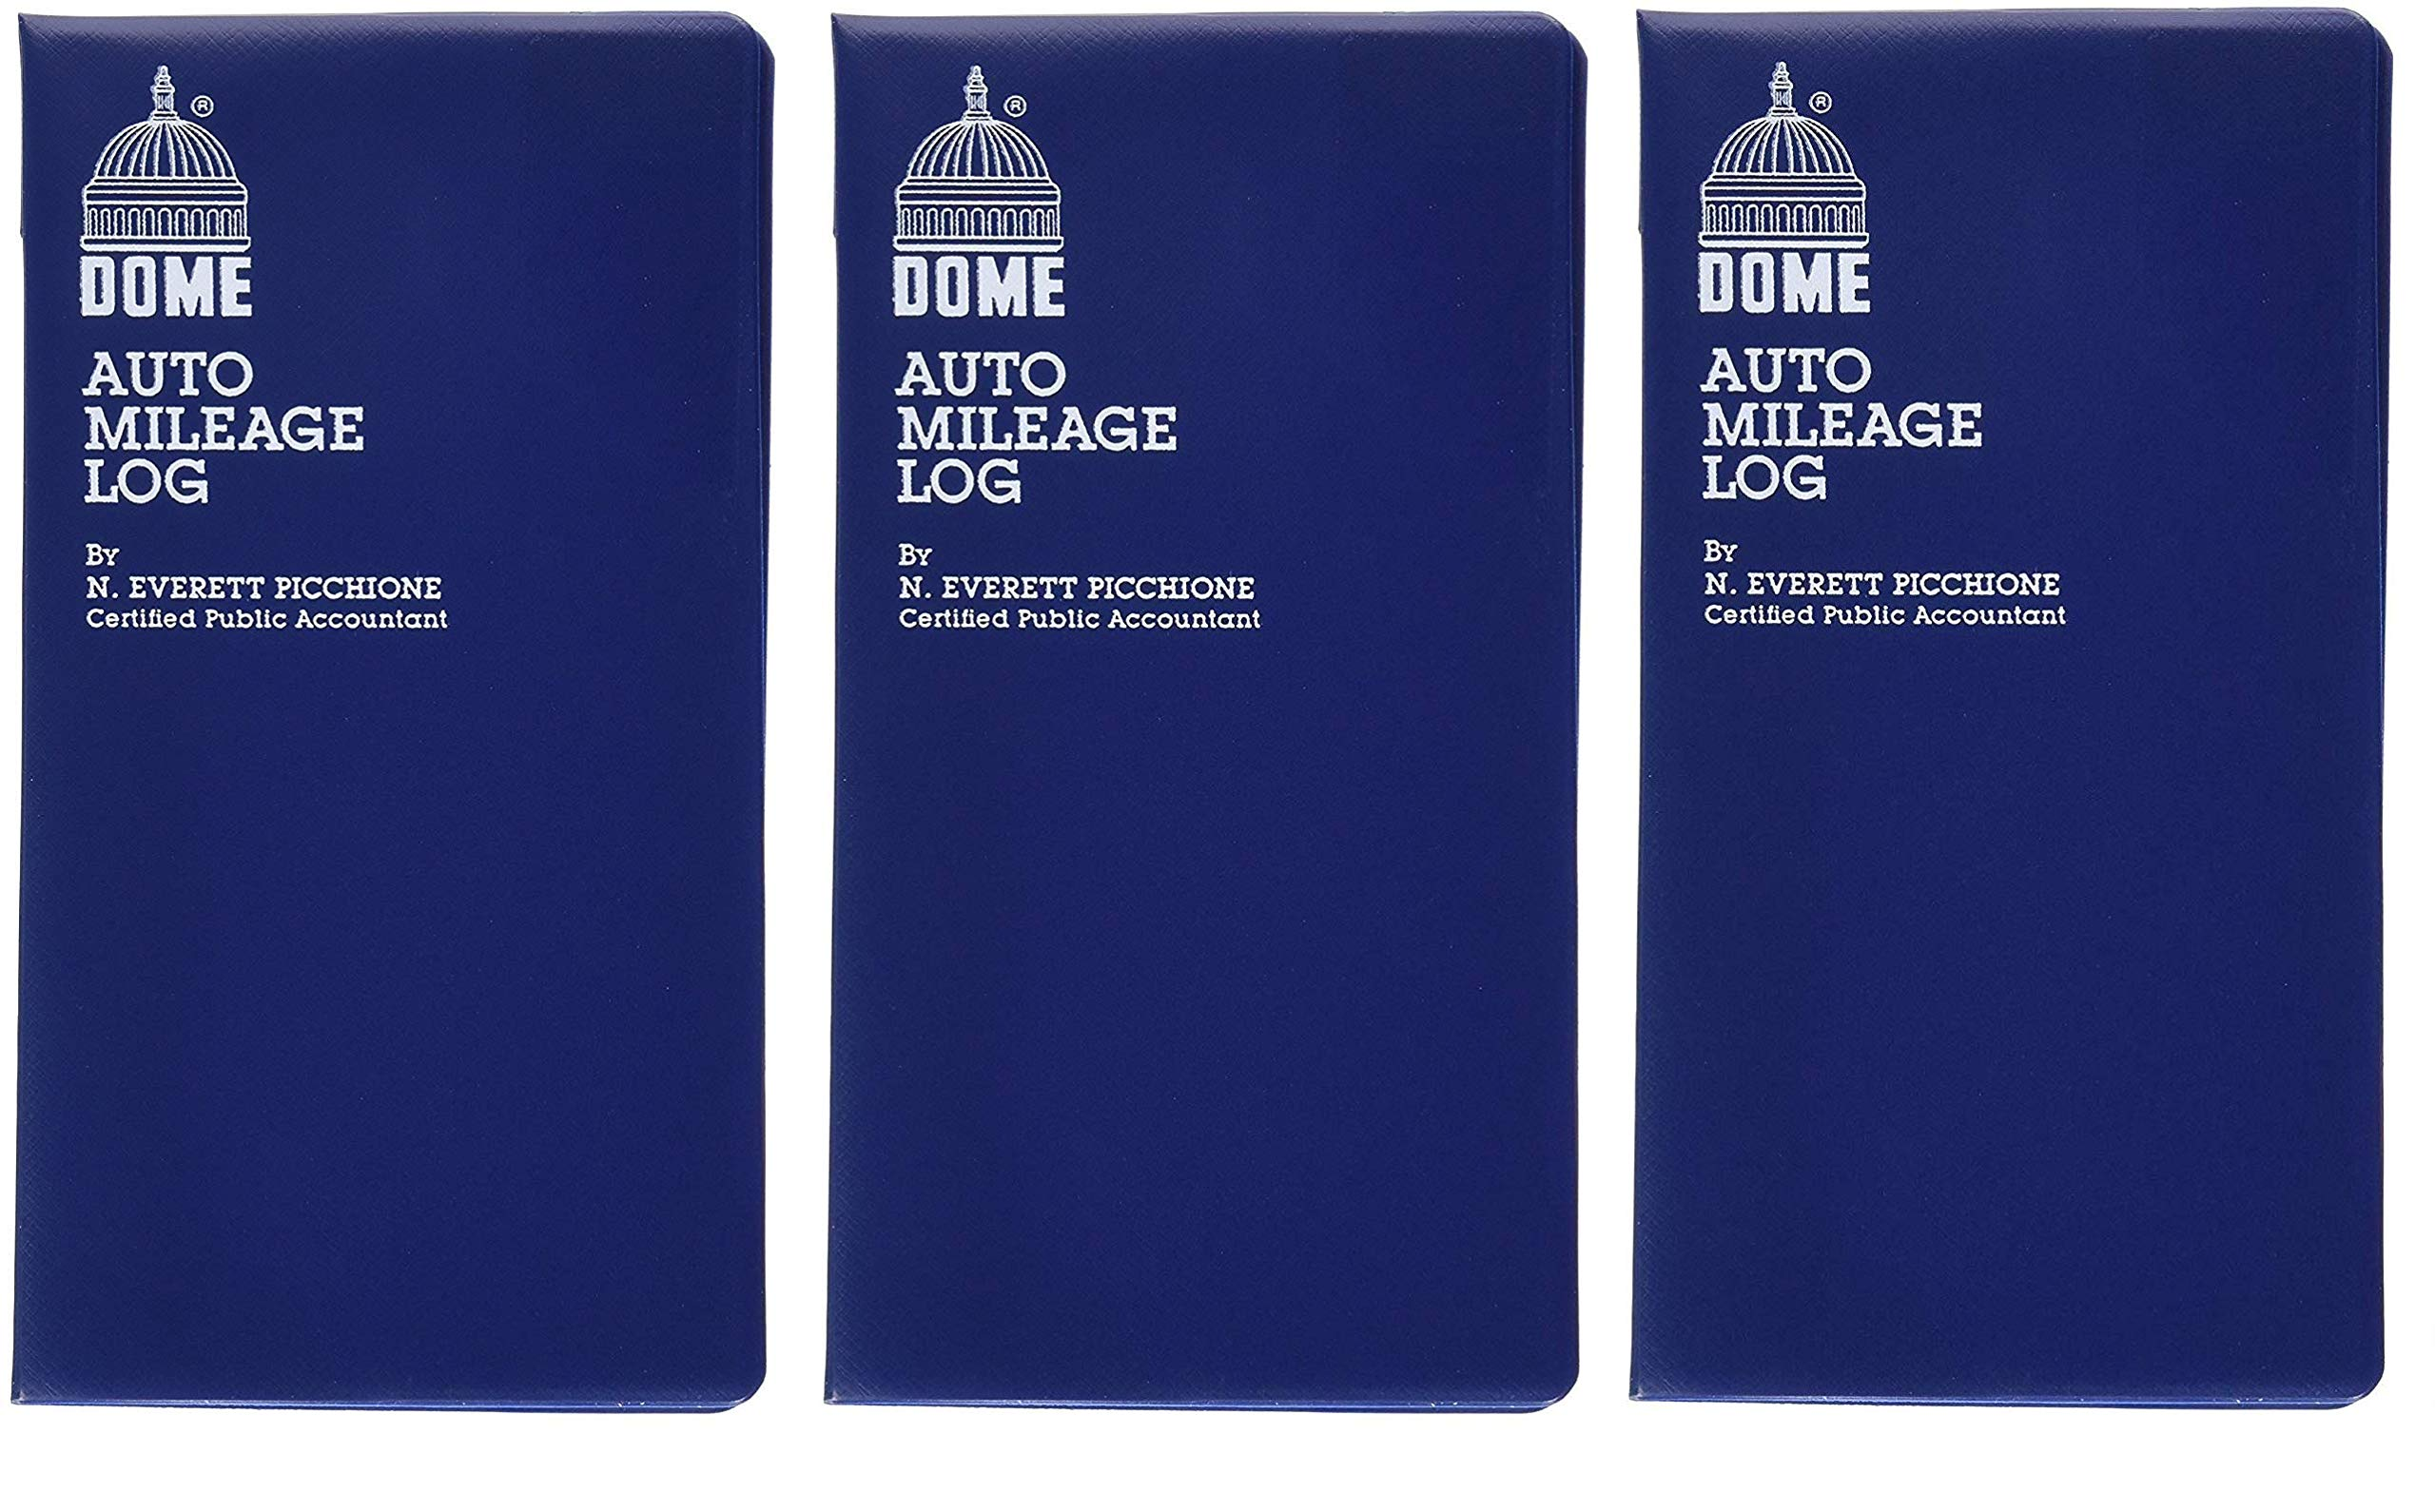 Dome(R) Auto Mileage Log, Vinyl Cover, 3 1/4in. x 6 1/4in, Blue (Тhree Pаck) by DomeSkin